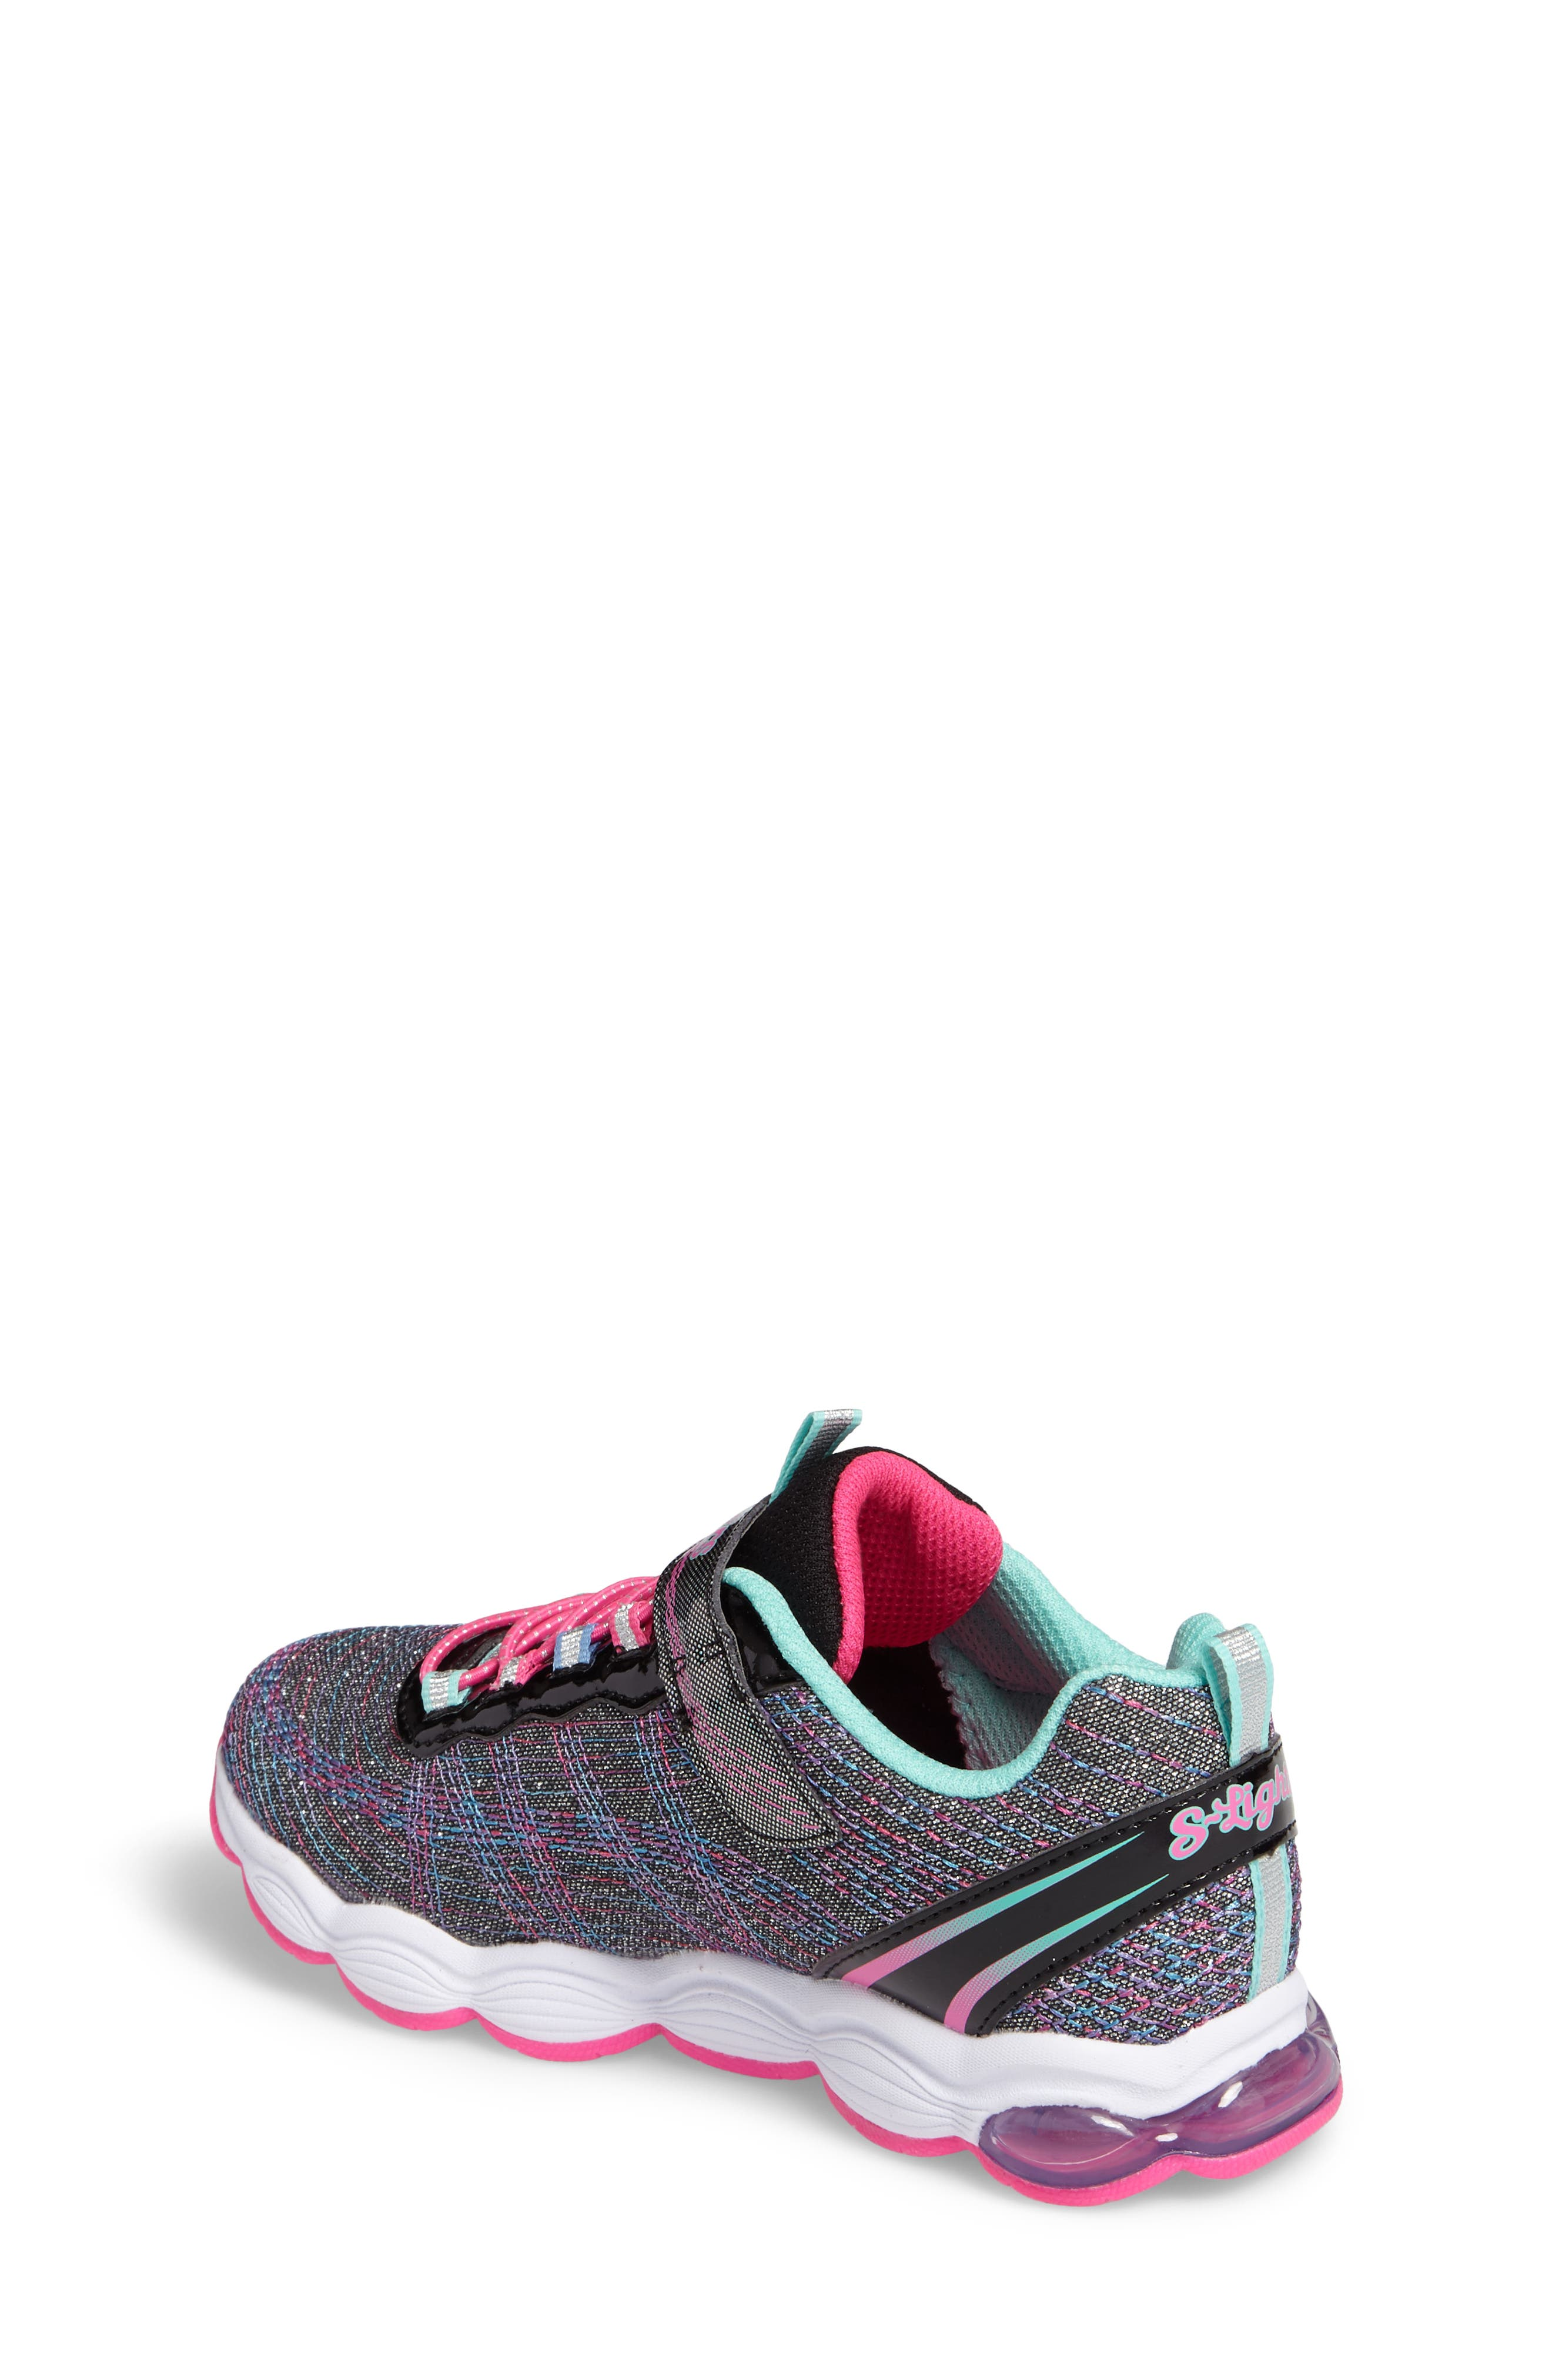 Glimmer Lights Sneakers,                             Alternate thumbnail 2, color,                             001